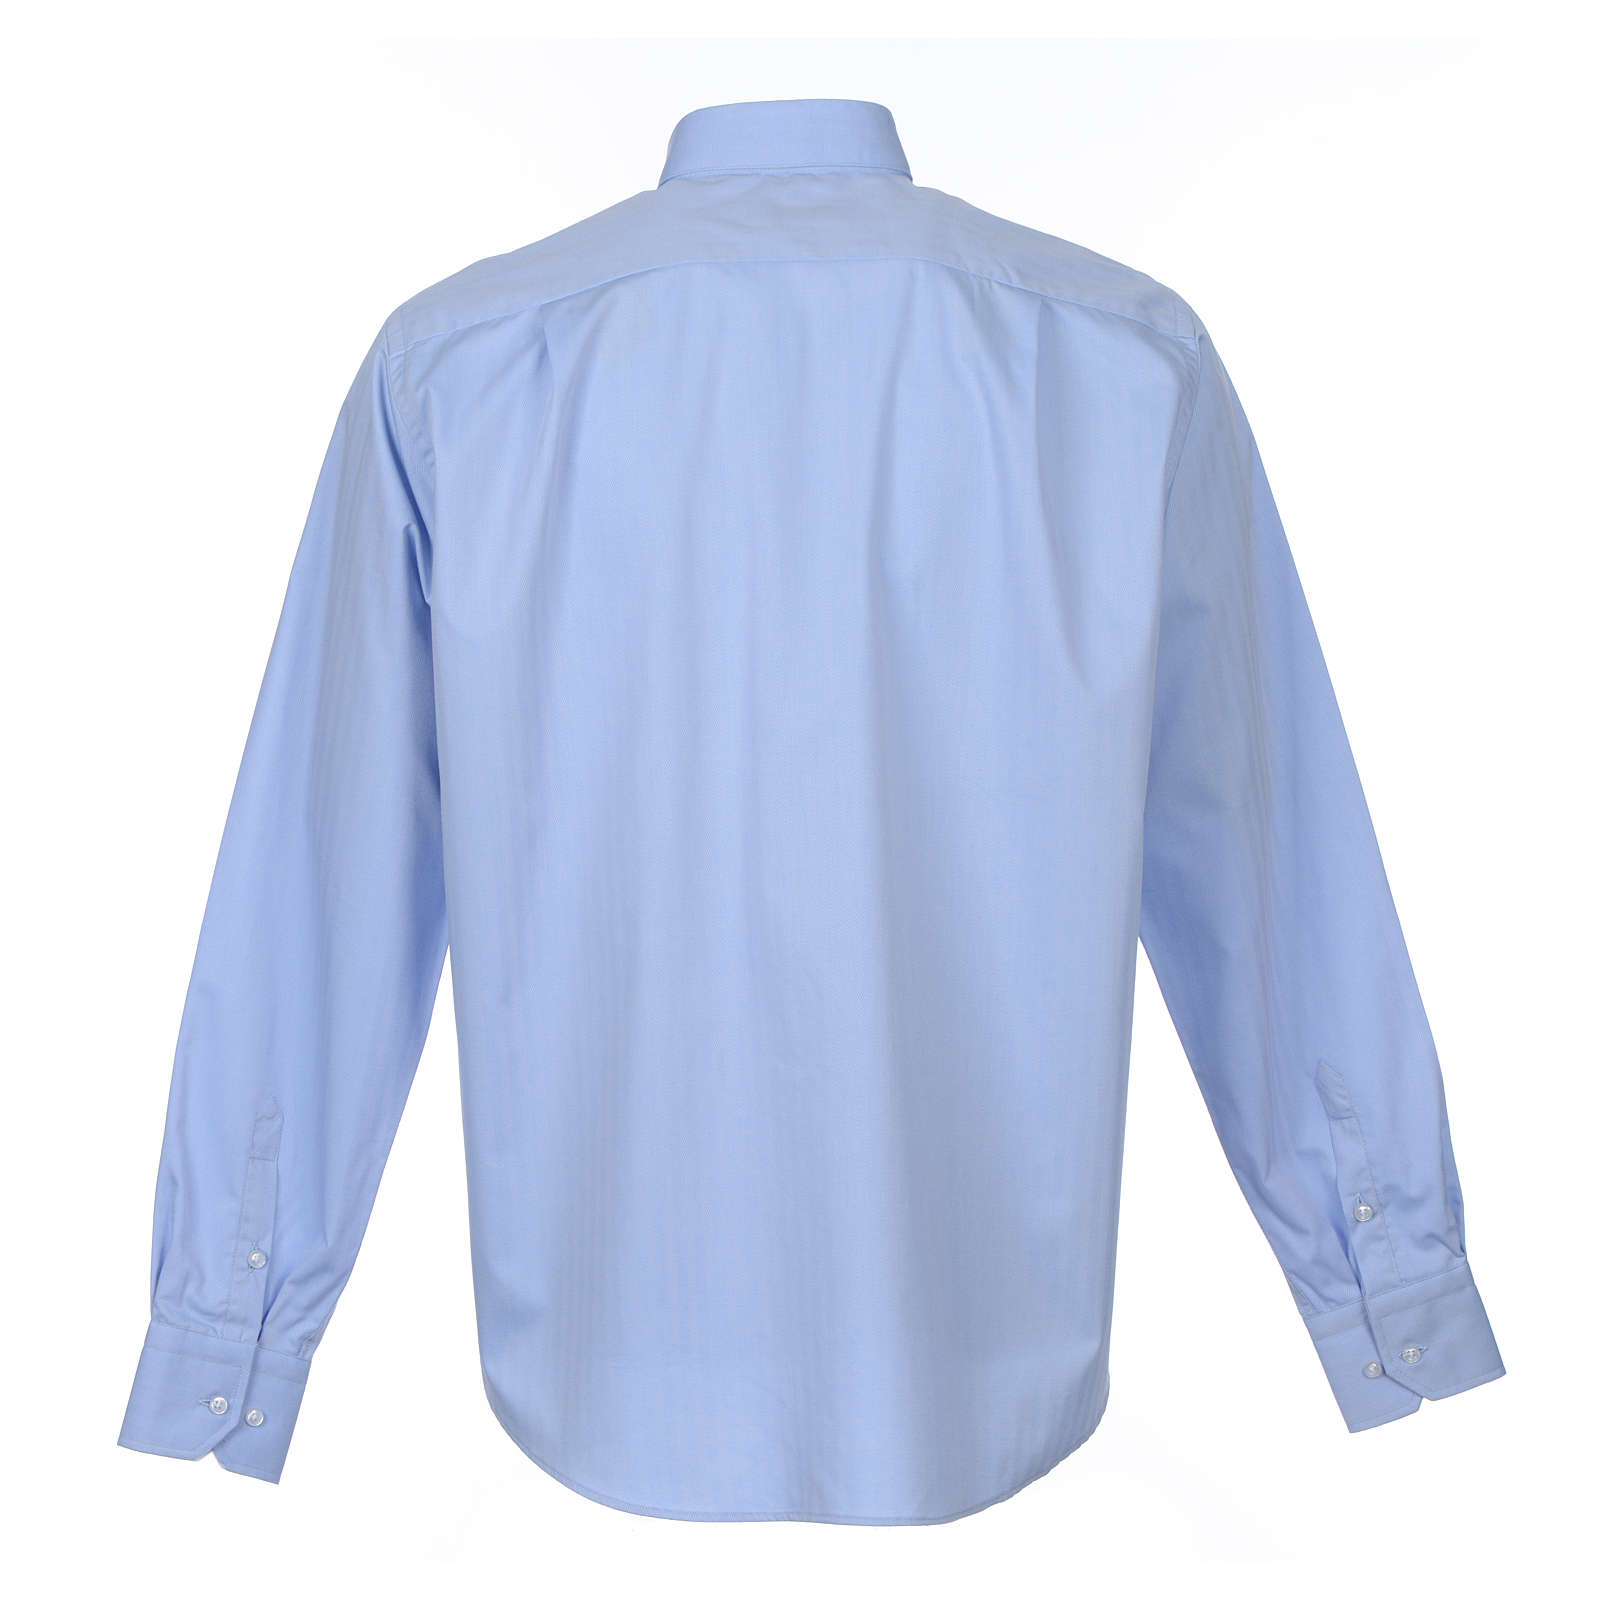 Clergy shirt Long sleeves easy-iron mixed herringbone cotton Light Blue 4